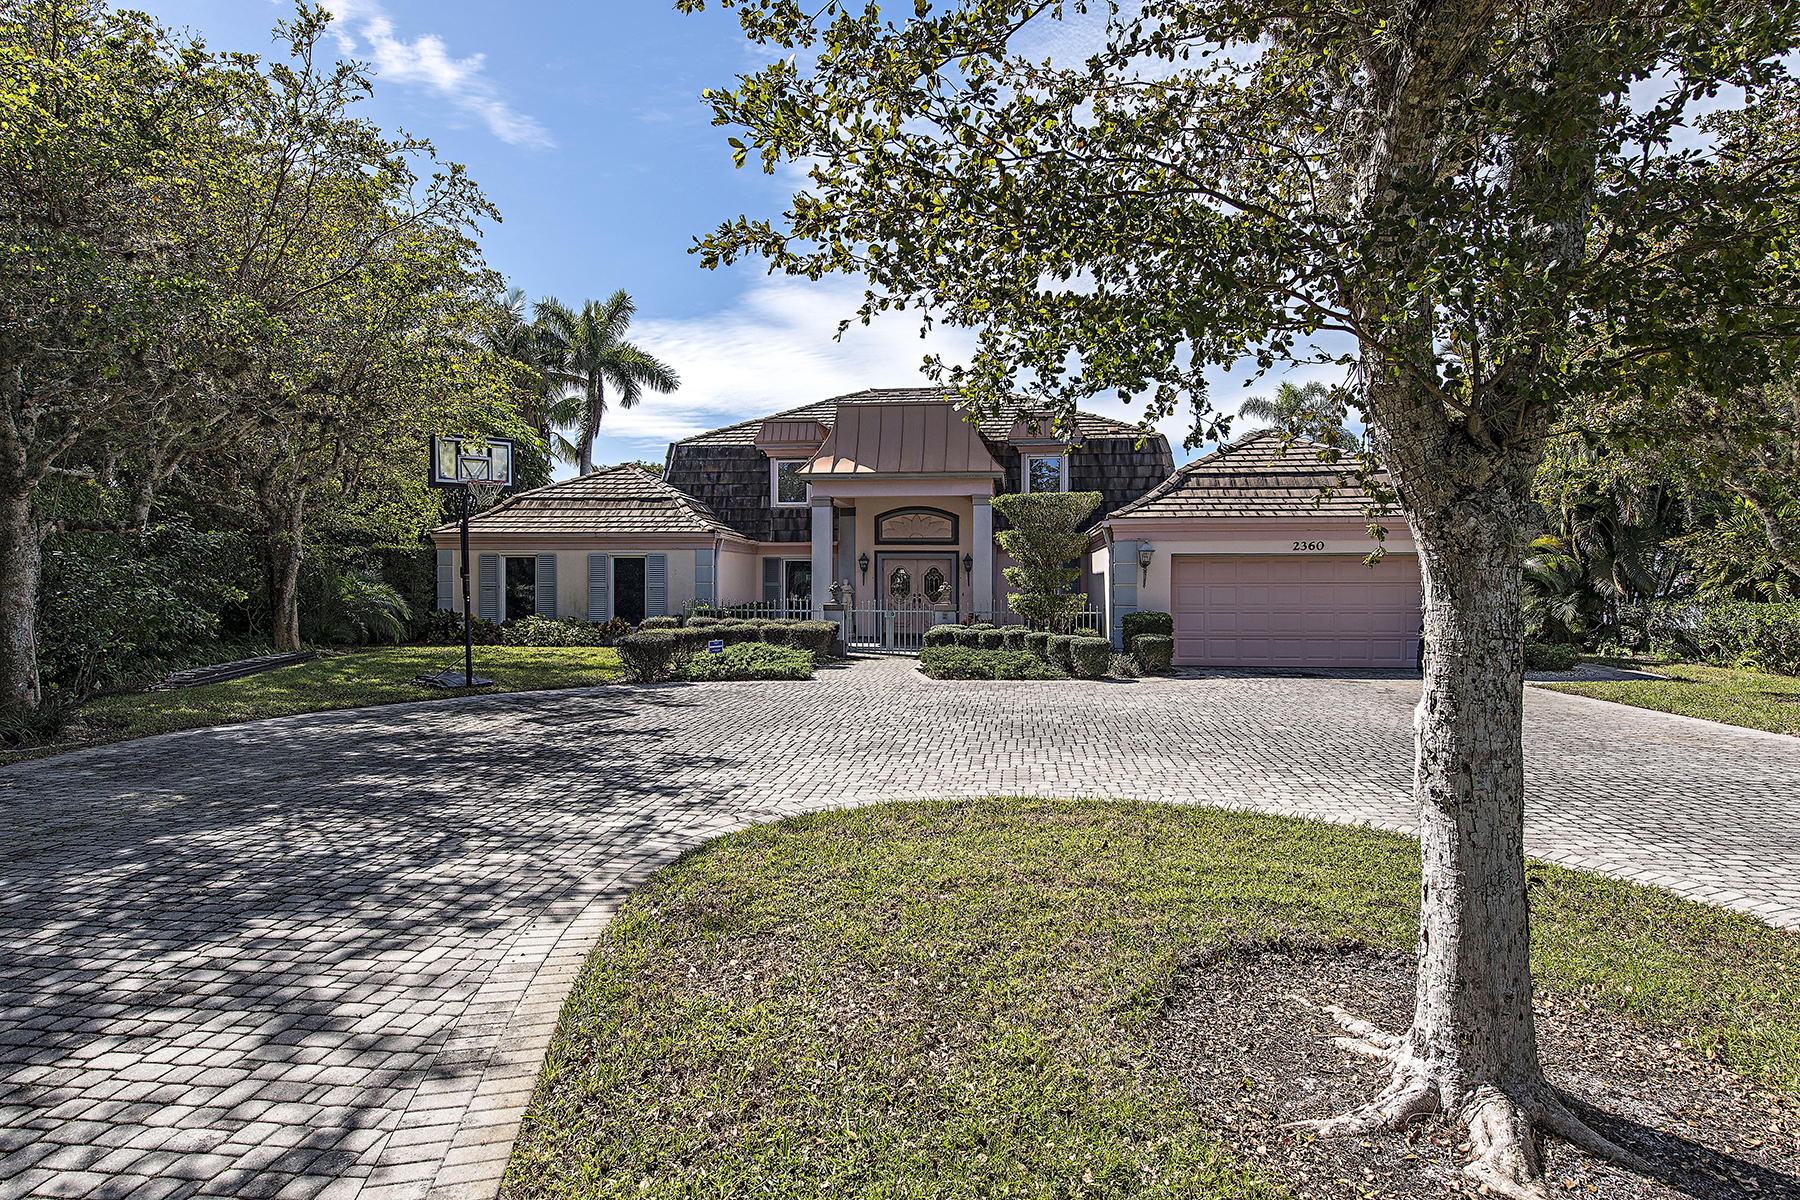 Single Family Home for Sale at Naples 2360 Kingfish Rd, Naples, Florida 34102 United States